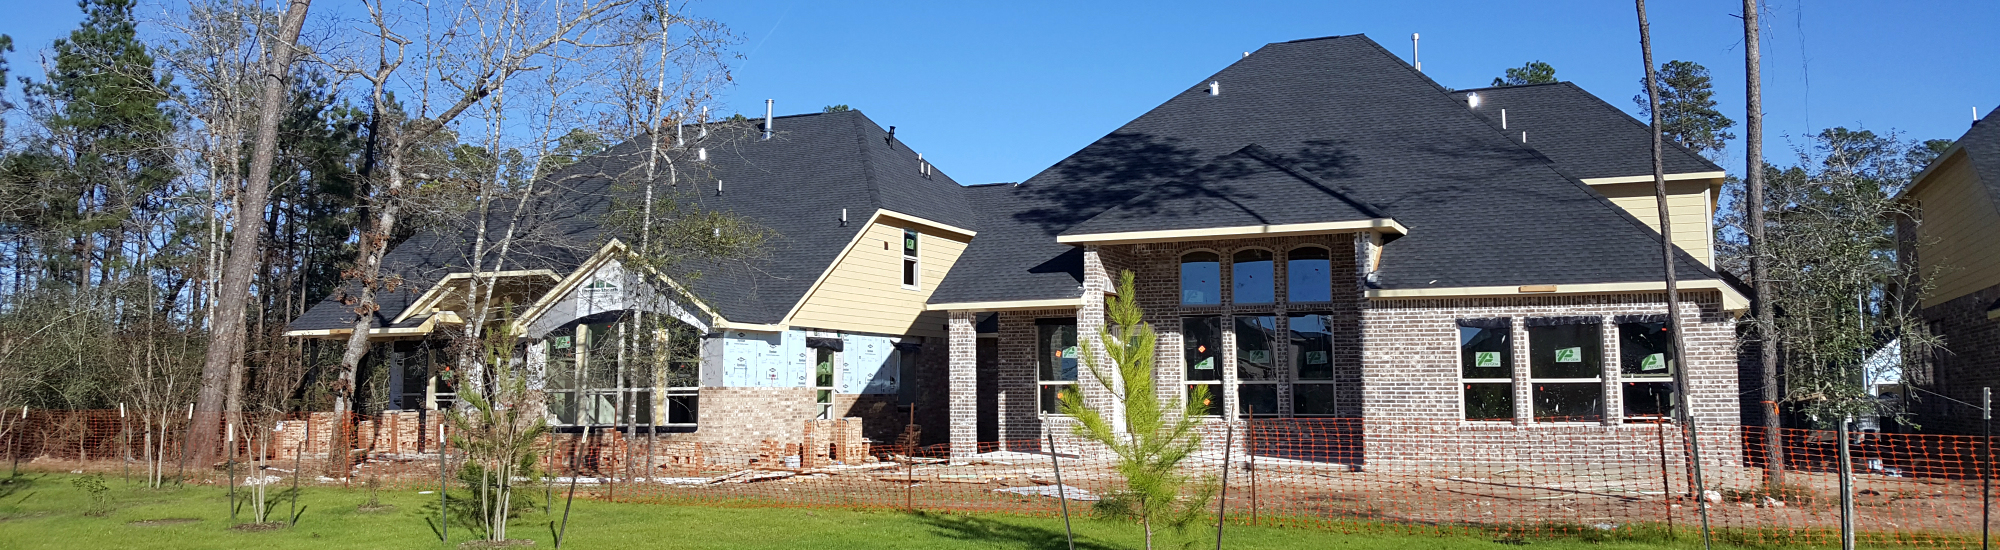 New Construction Homes The Woodlands Tx